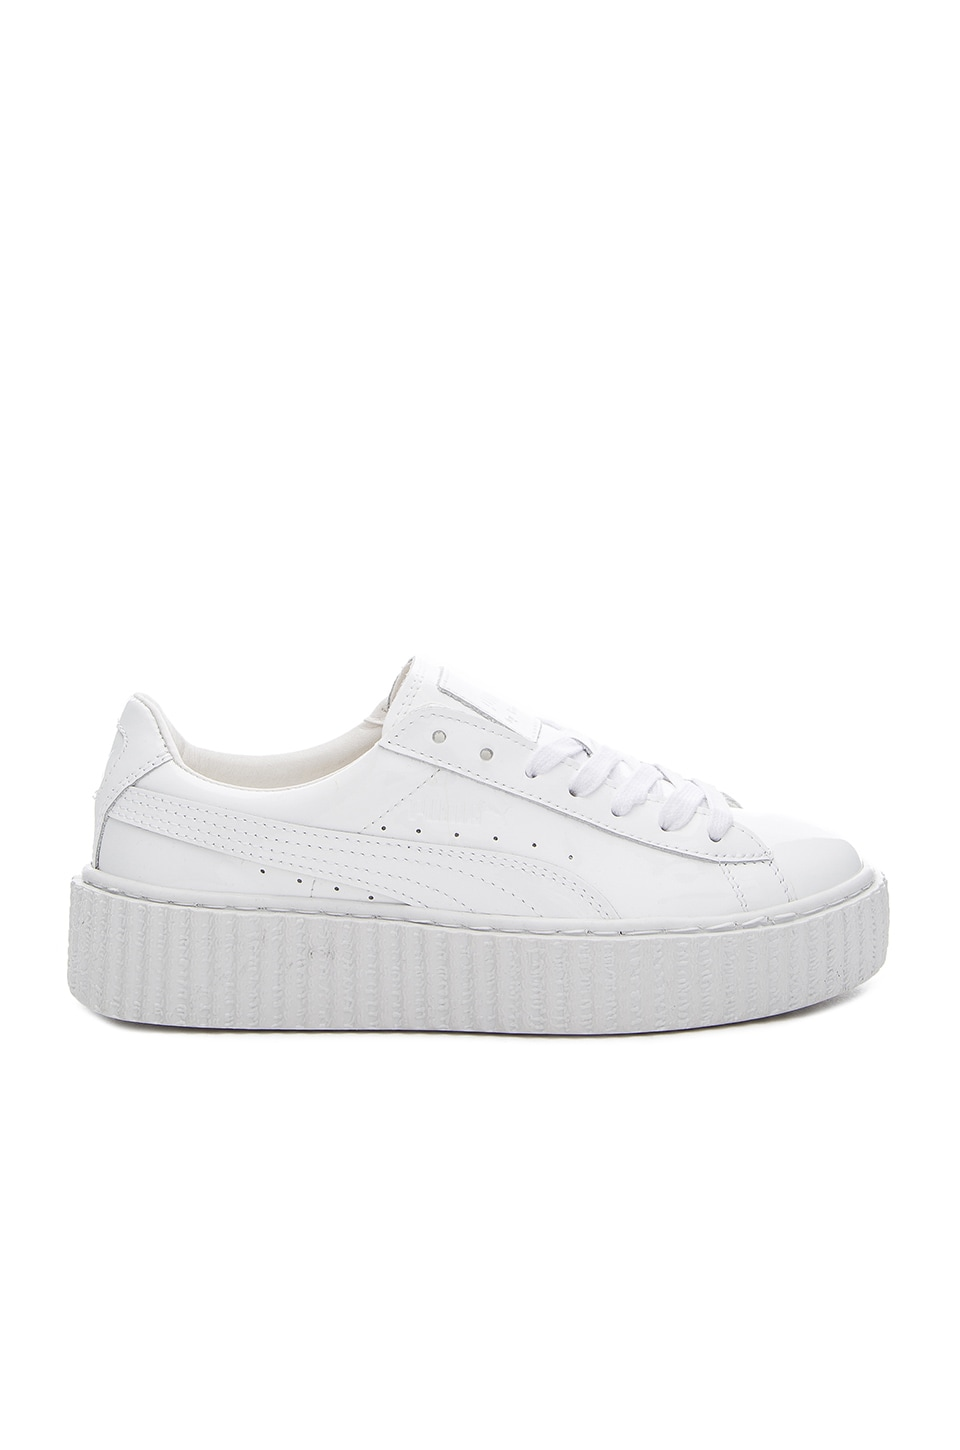 info for 2c2c6 cd537 Puma x Rihanna Basket Creepers Sneaker in Glo White | REVOLVE